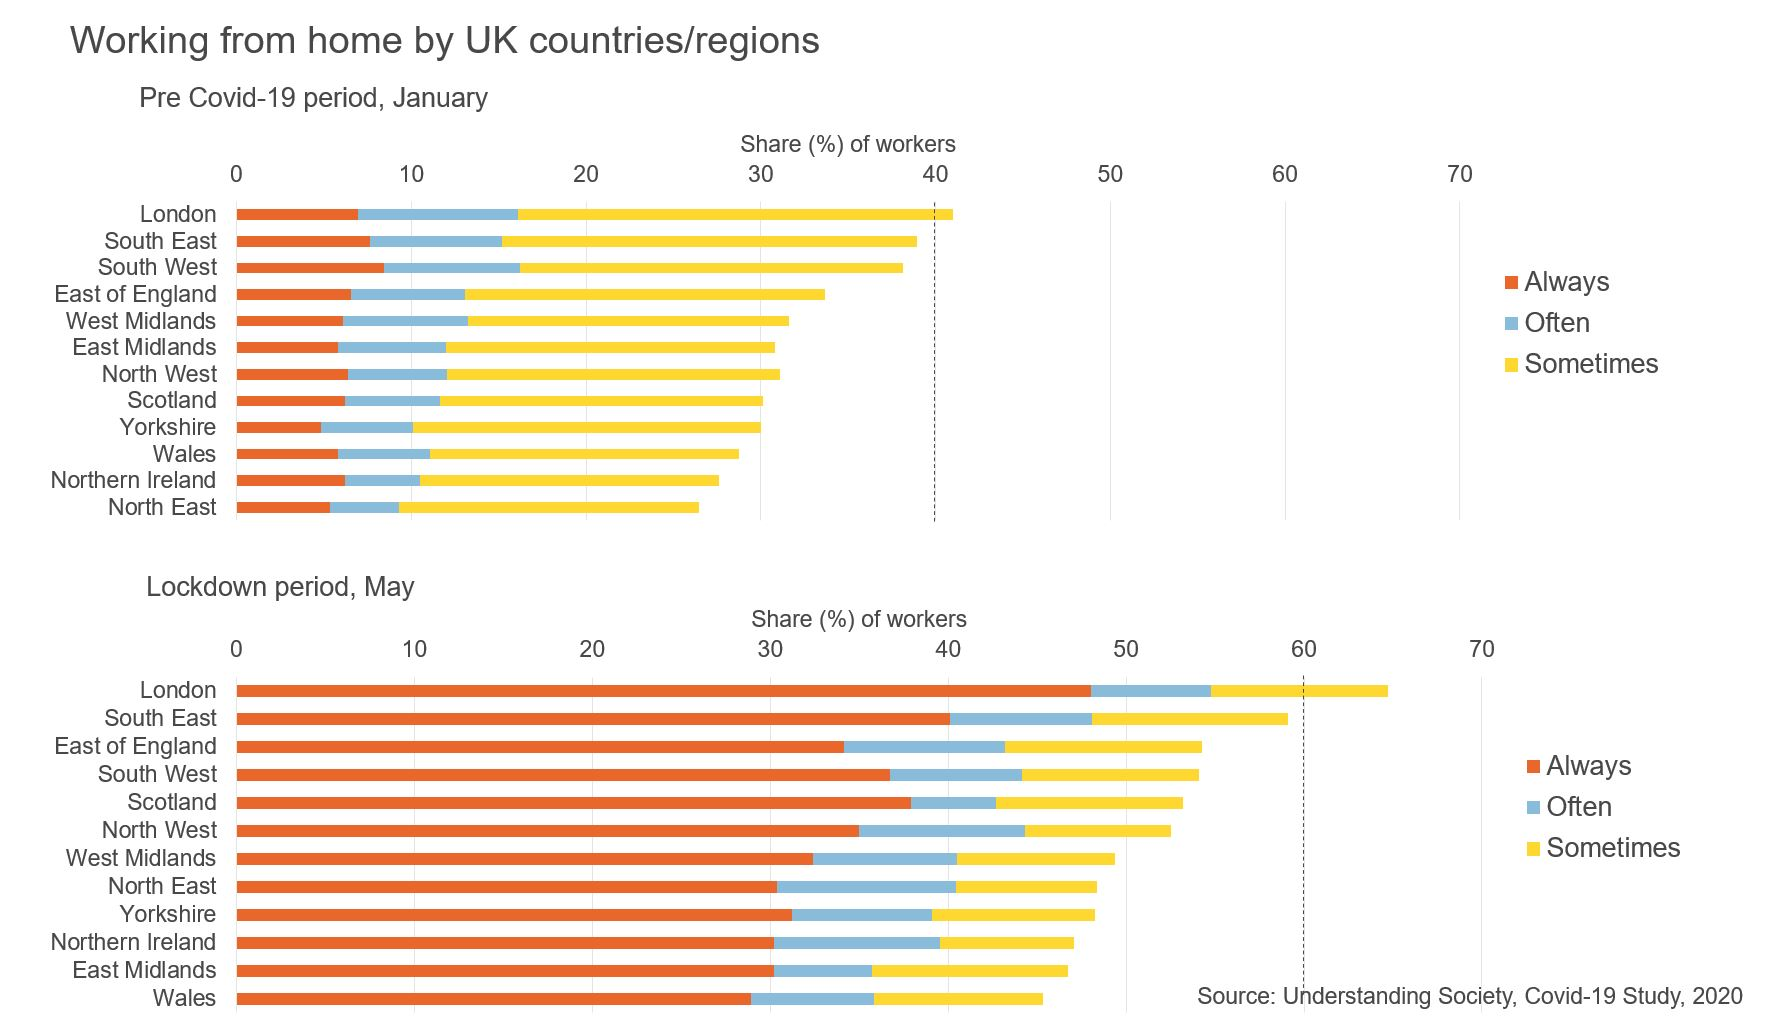 Figure showing working from home by UK countries/regions